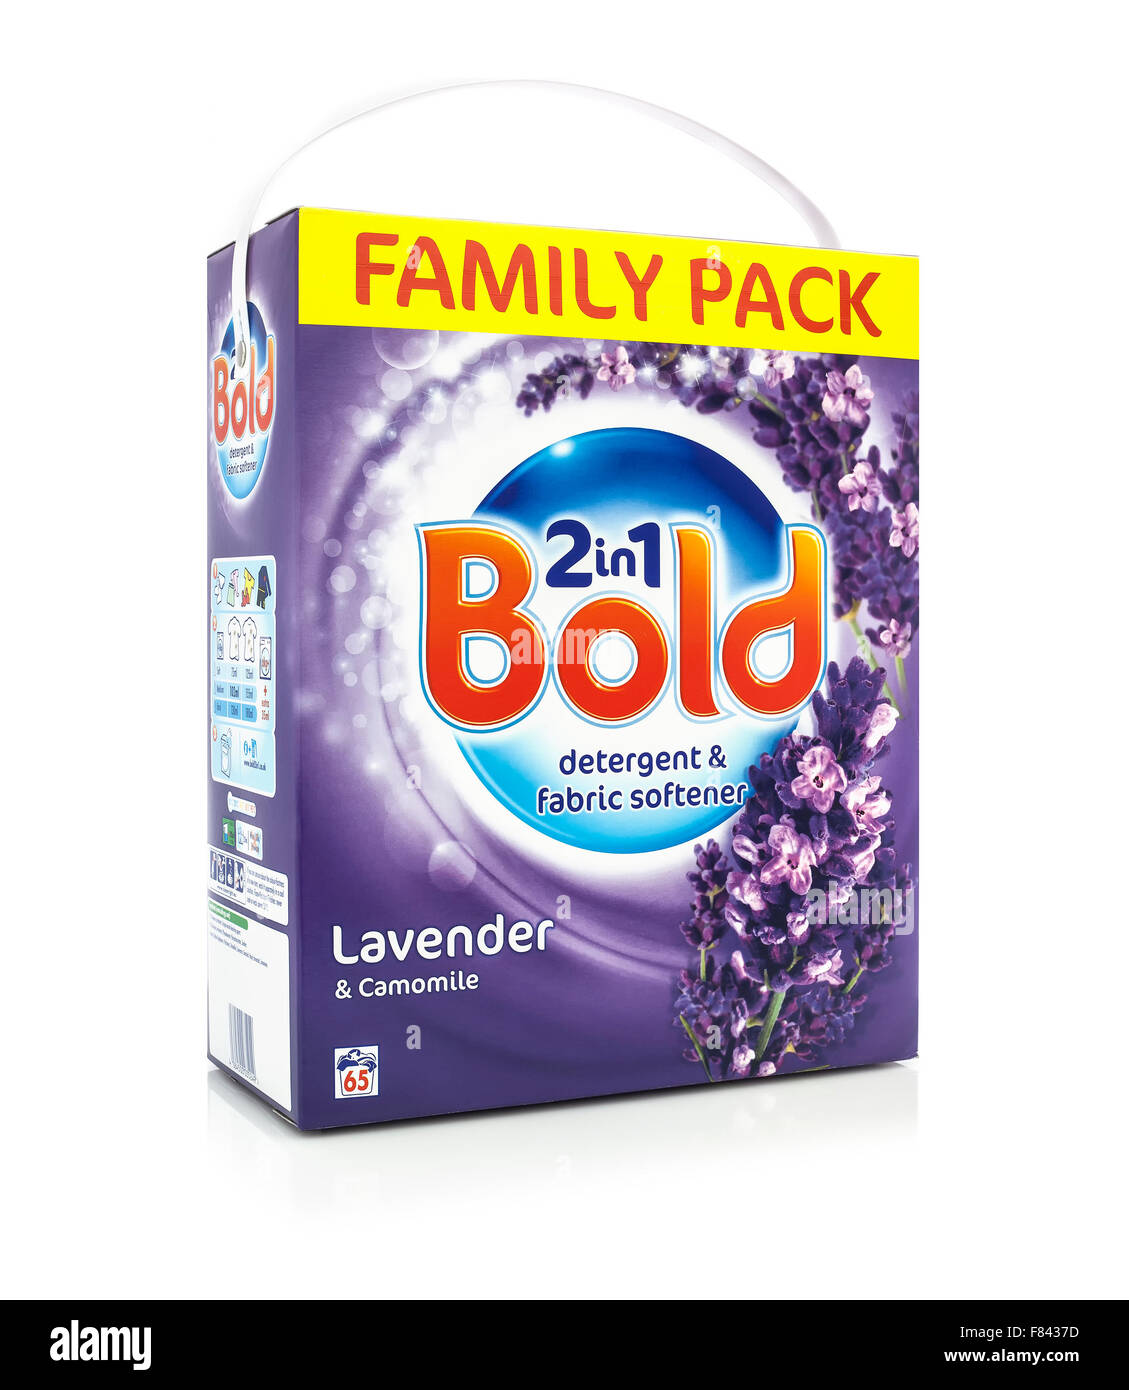 Family Pack of Bold 2 In 1 Lavender & Camomile Detergent and Fabric Softener - Stock Image